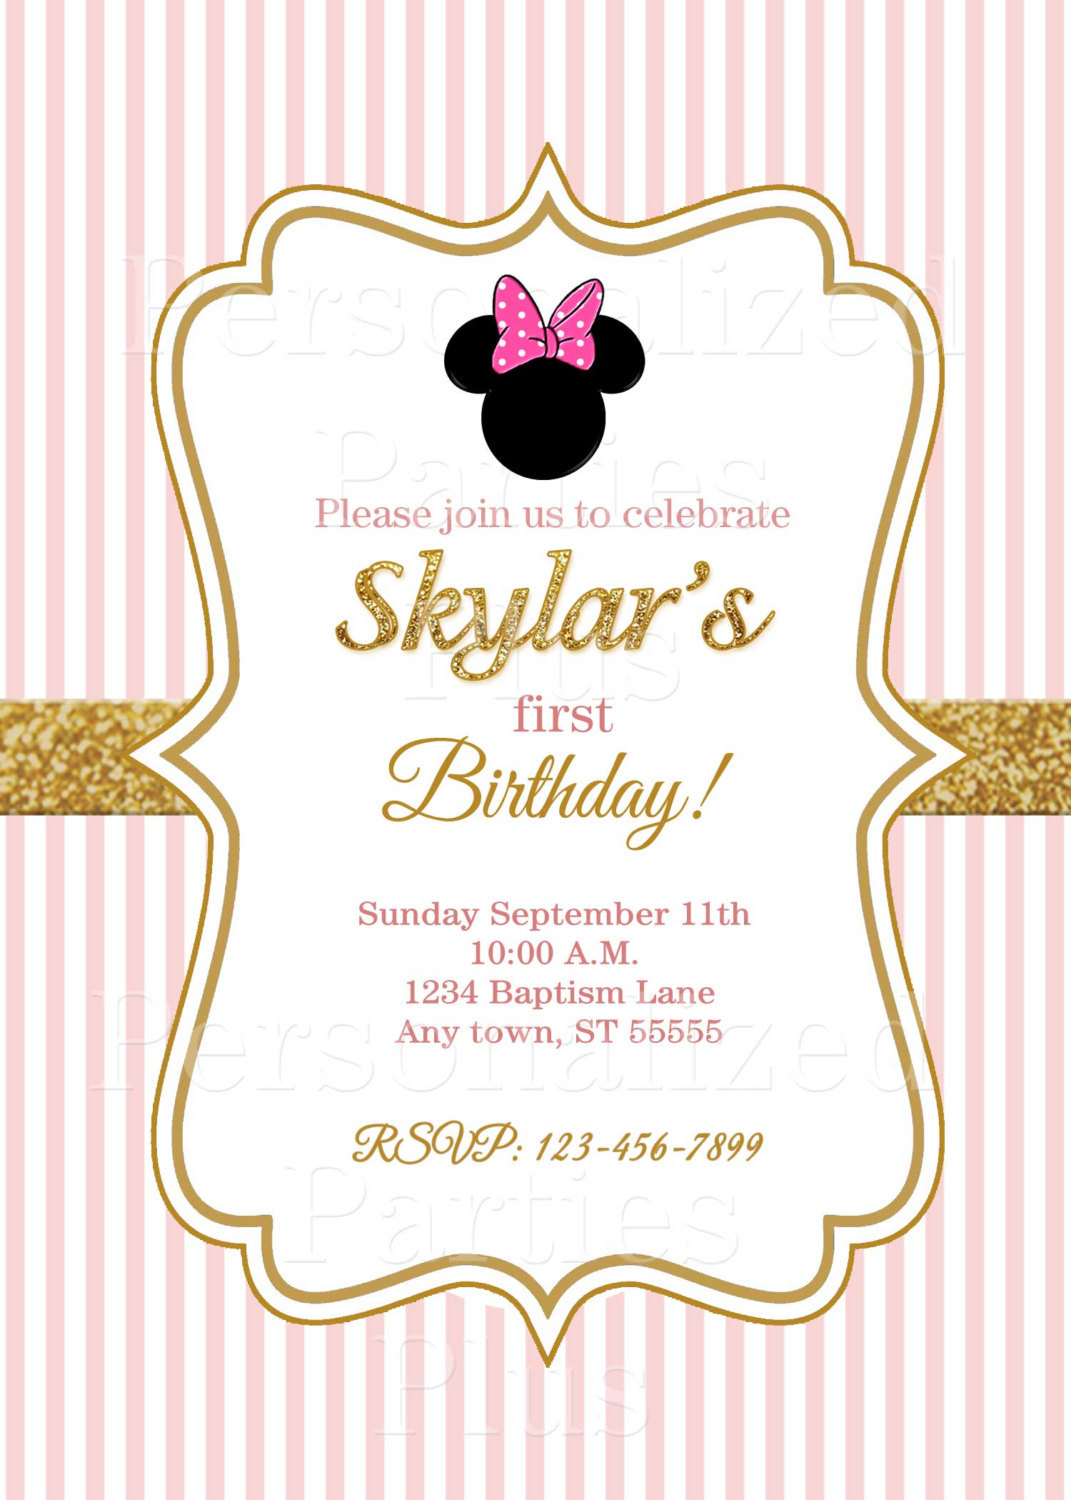 Minnie Mouse birthday invitations | Pink and gold Minnie Mouse birthday invitati